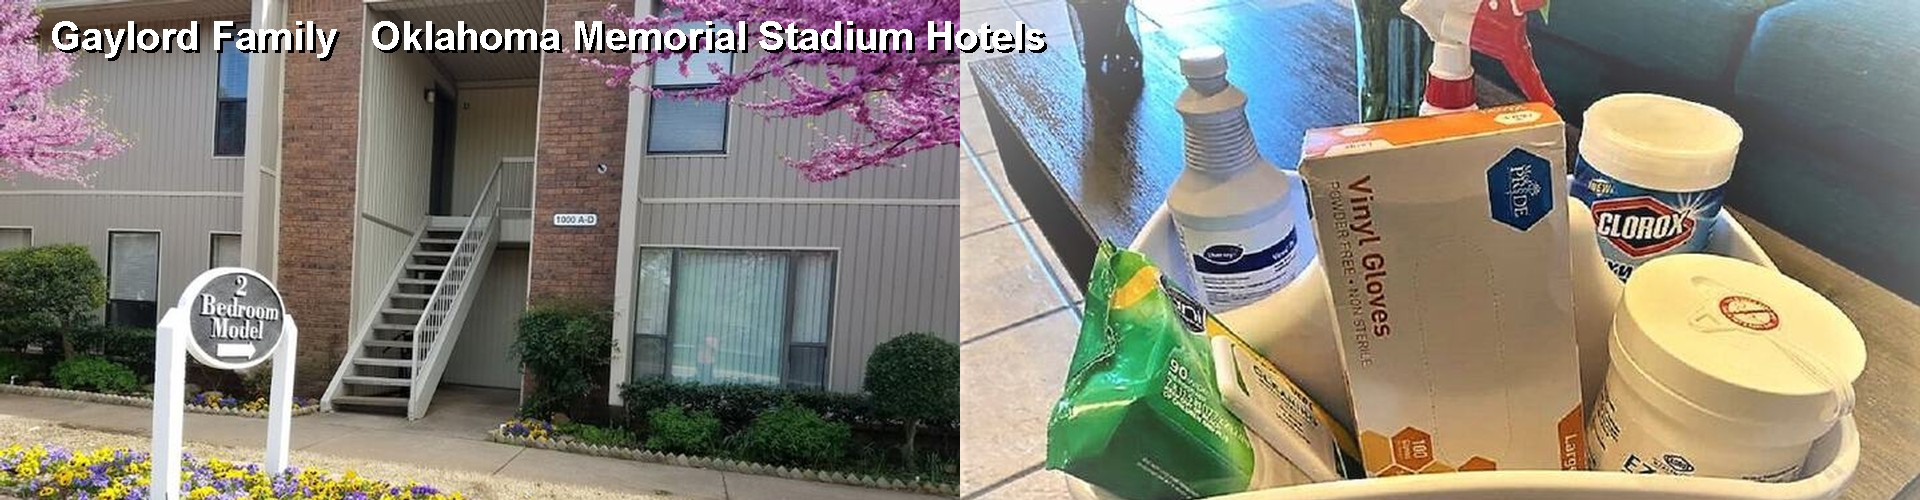 5 Best Hotels near Gaylord Family Oklahoma Memorial Stadium